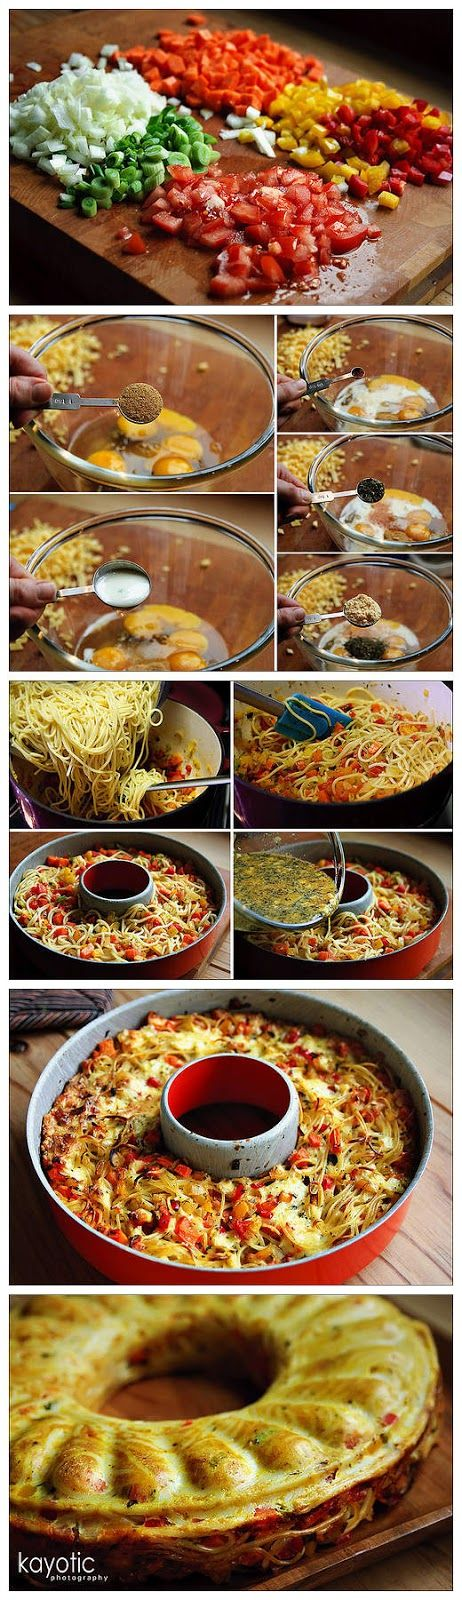 Spaghetti Pie - kiss recipe